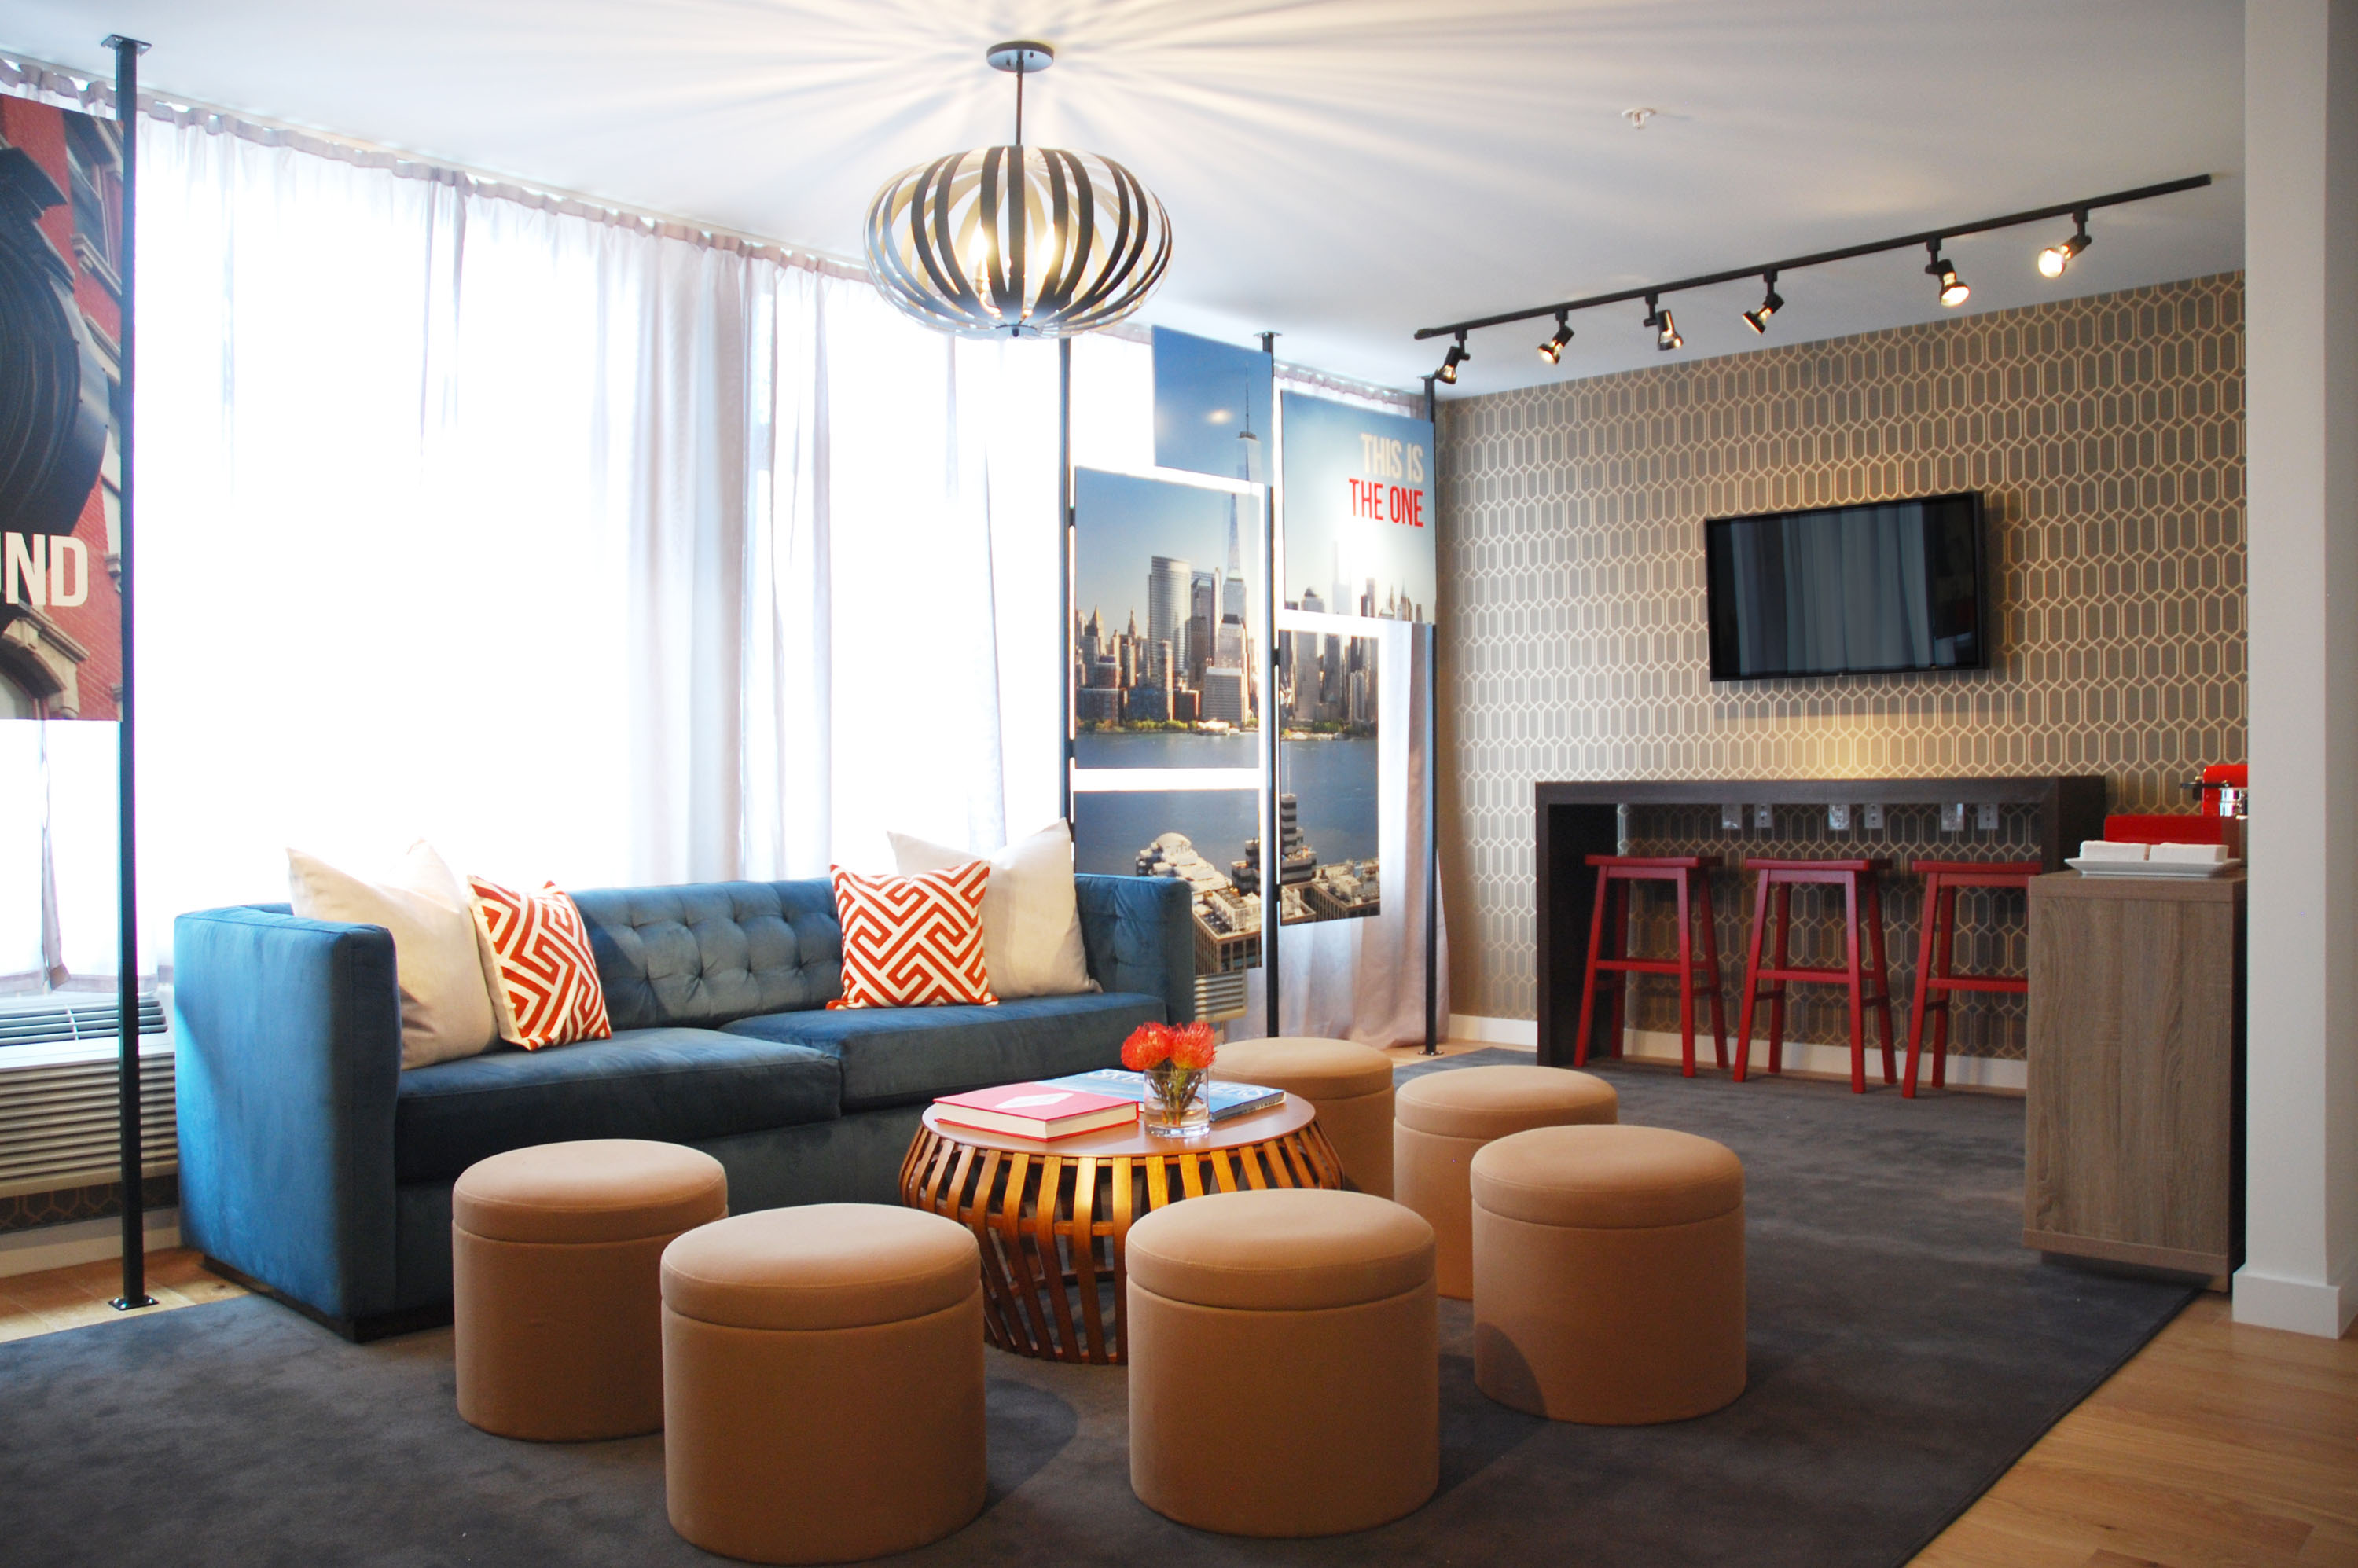 Creative office lounge design | Experiential design